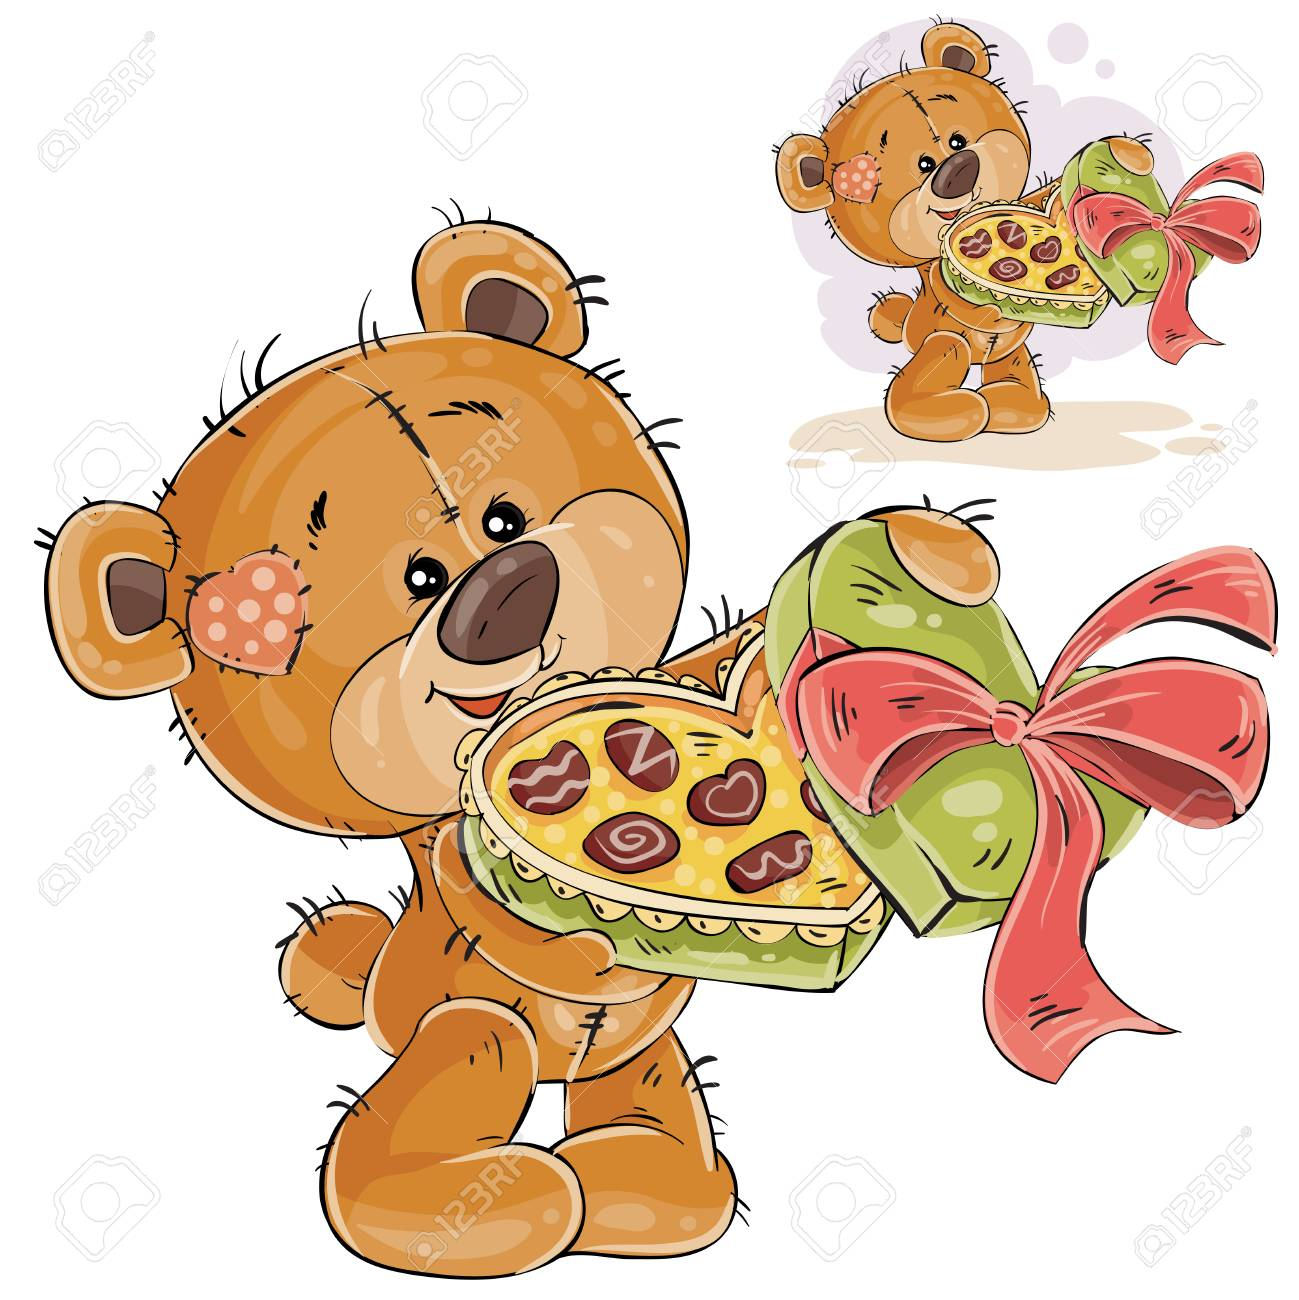 Vector illustration of a brown teddy bear holding an open box of chocolates  in its paws